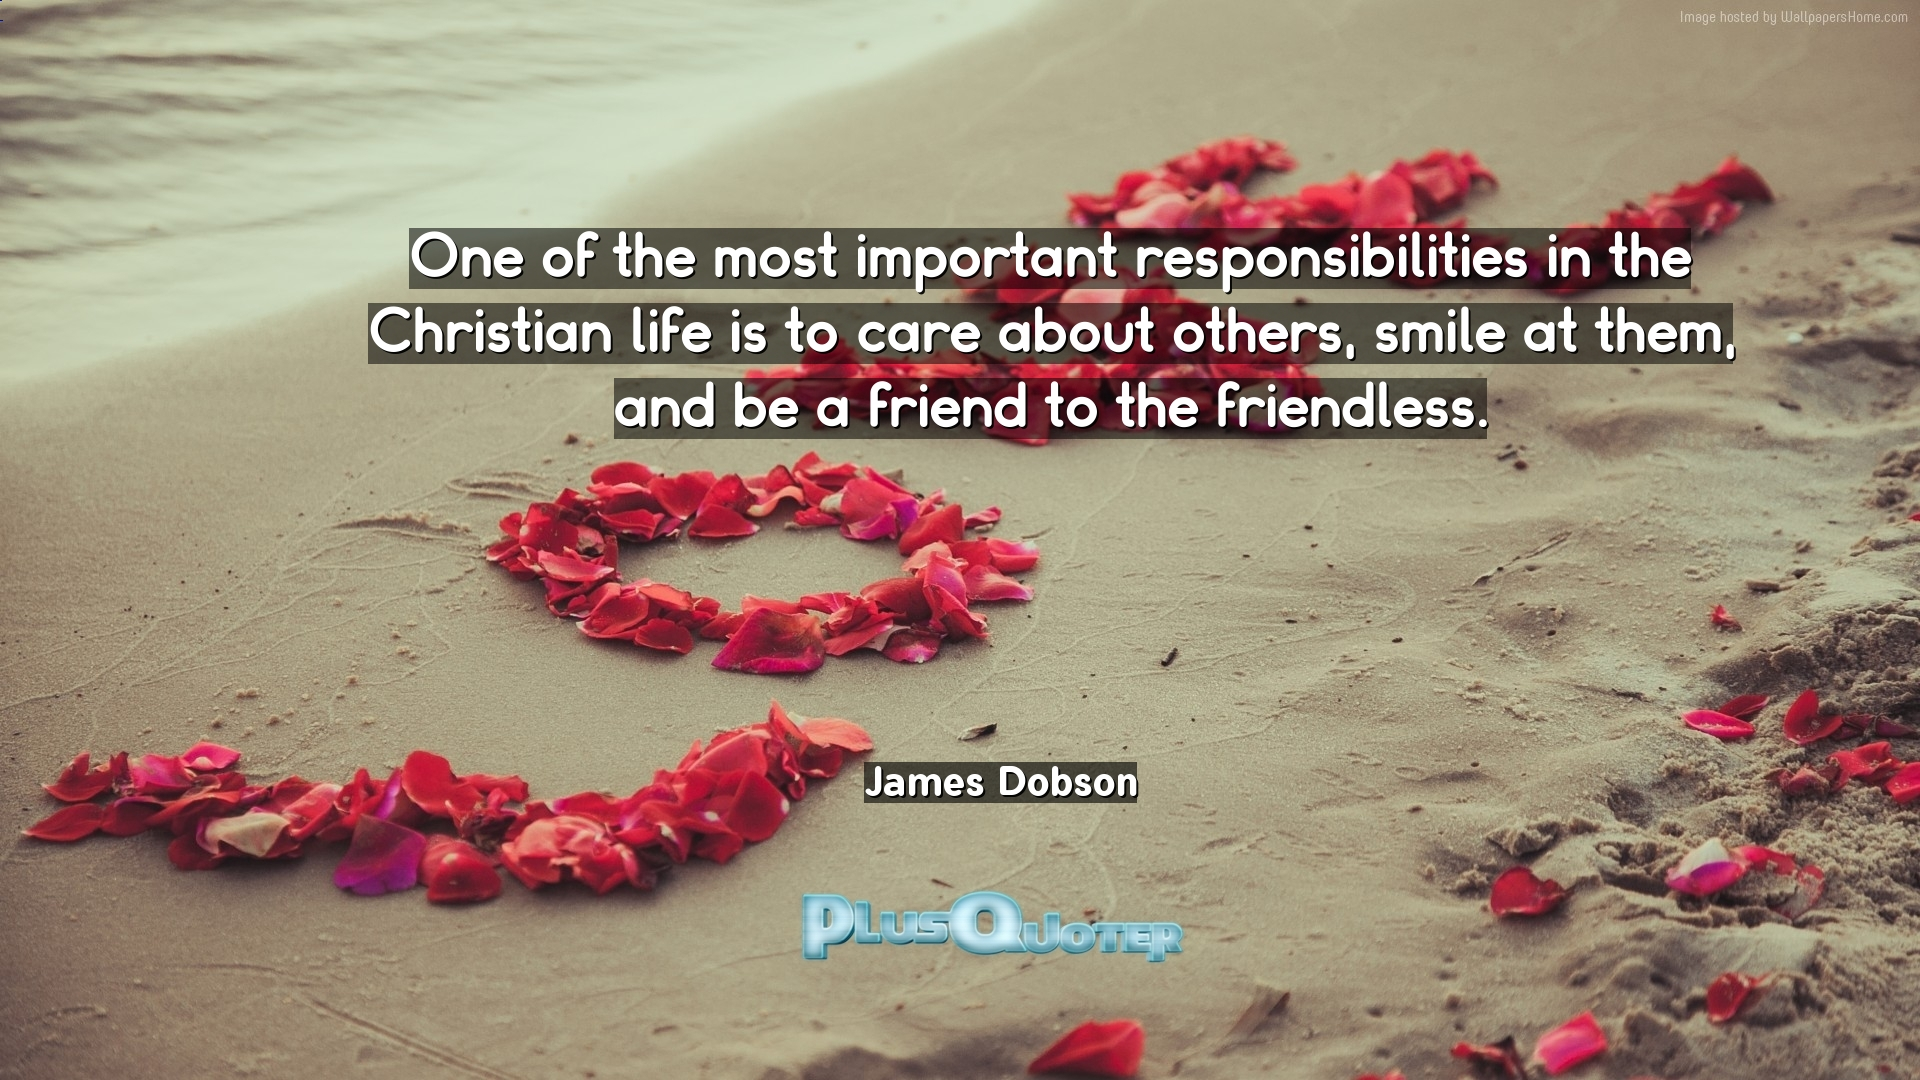 Christian Life Quotes One Of The Most Important Responsibilities In The Christian Life